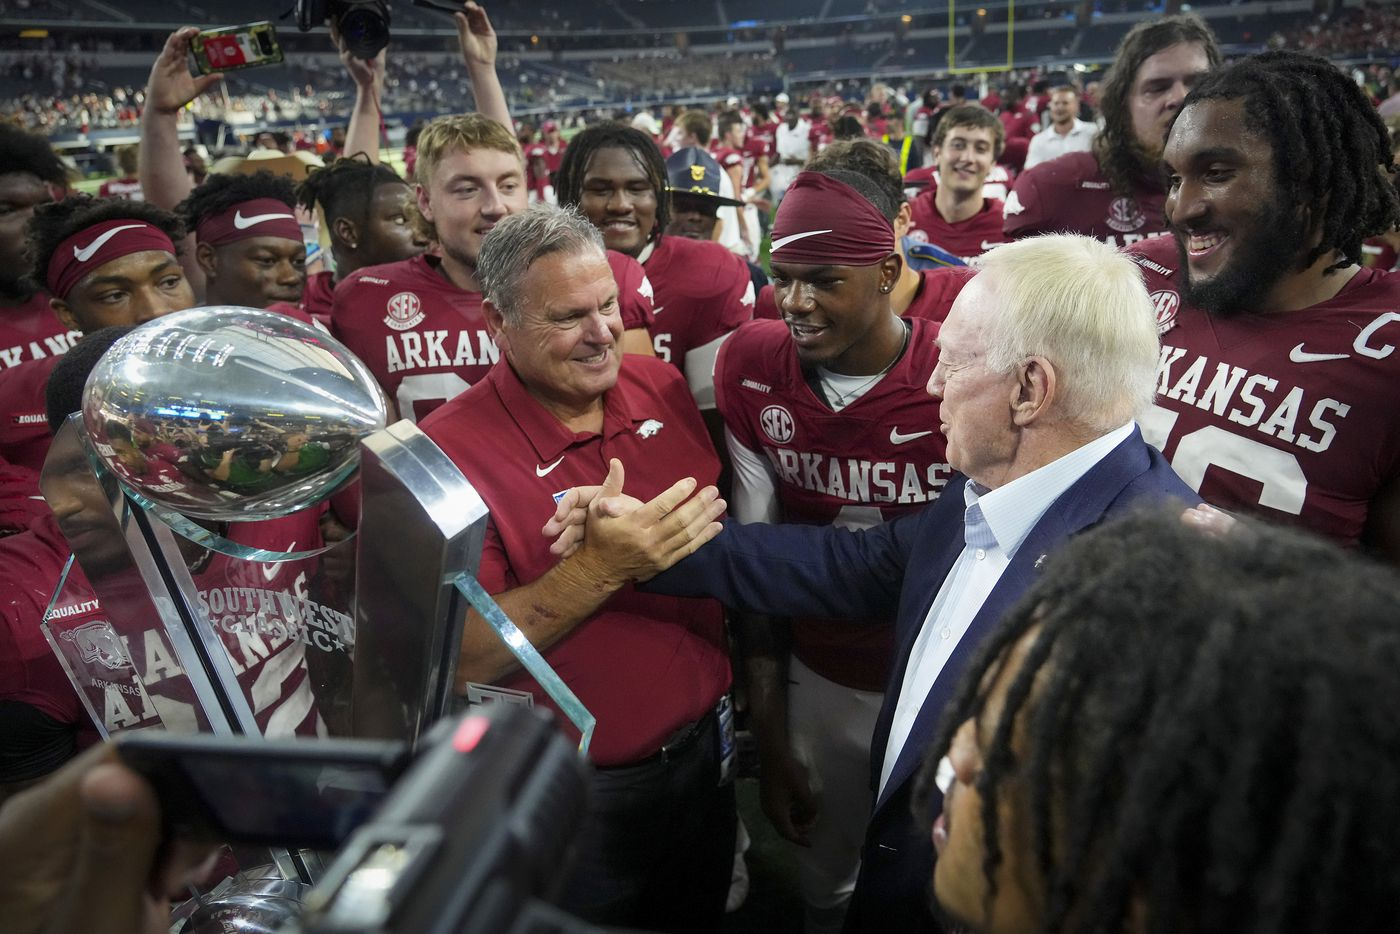 Dallas Cowboys owner and general manager Jerry Jones (right) congratulates Arkansas head coach Sam Pittman after a victory over Texas A&M in an NCAA football game at AT&T Stadium on Saturday, Sept. 25, 2021, in Arlington. Arkansas, Jones alma mater, won the game 20-10.